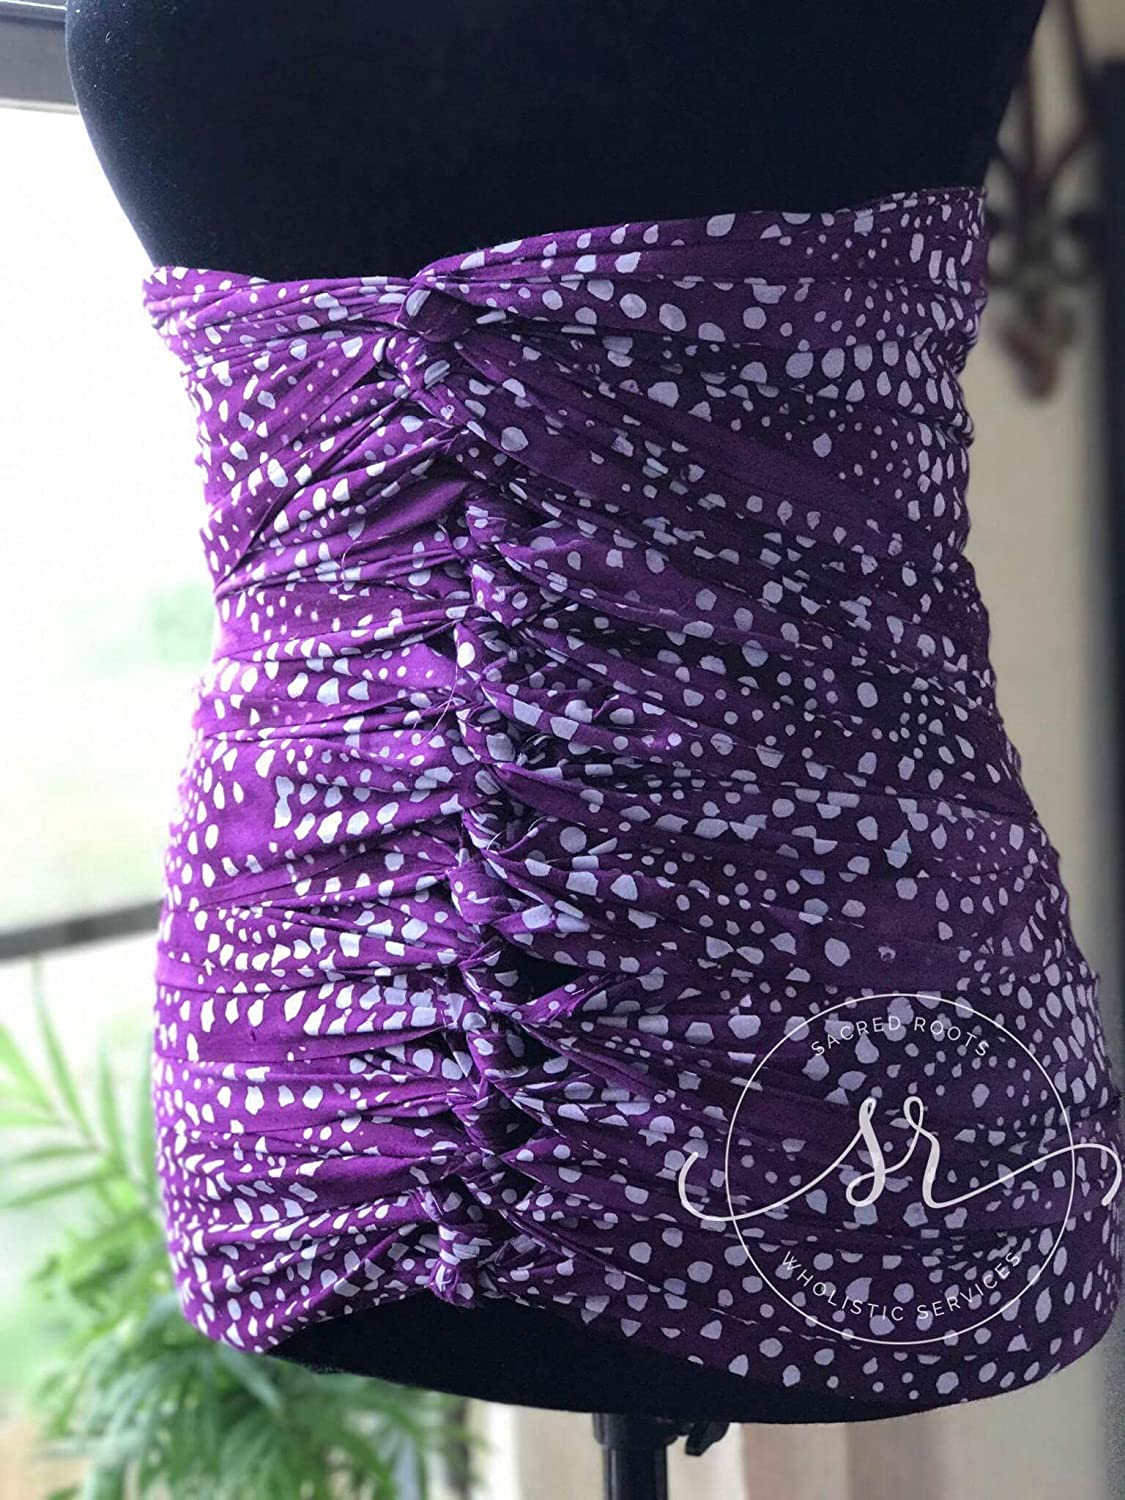 1066a18ac Amazon.com: Lilac on Purple Bengkung Belly Binding-Serged: Health &  Personal Care